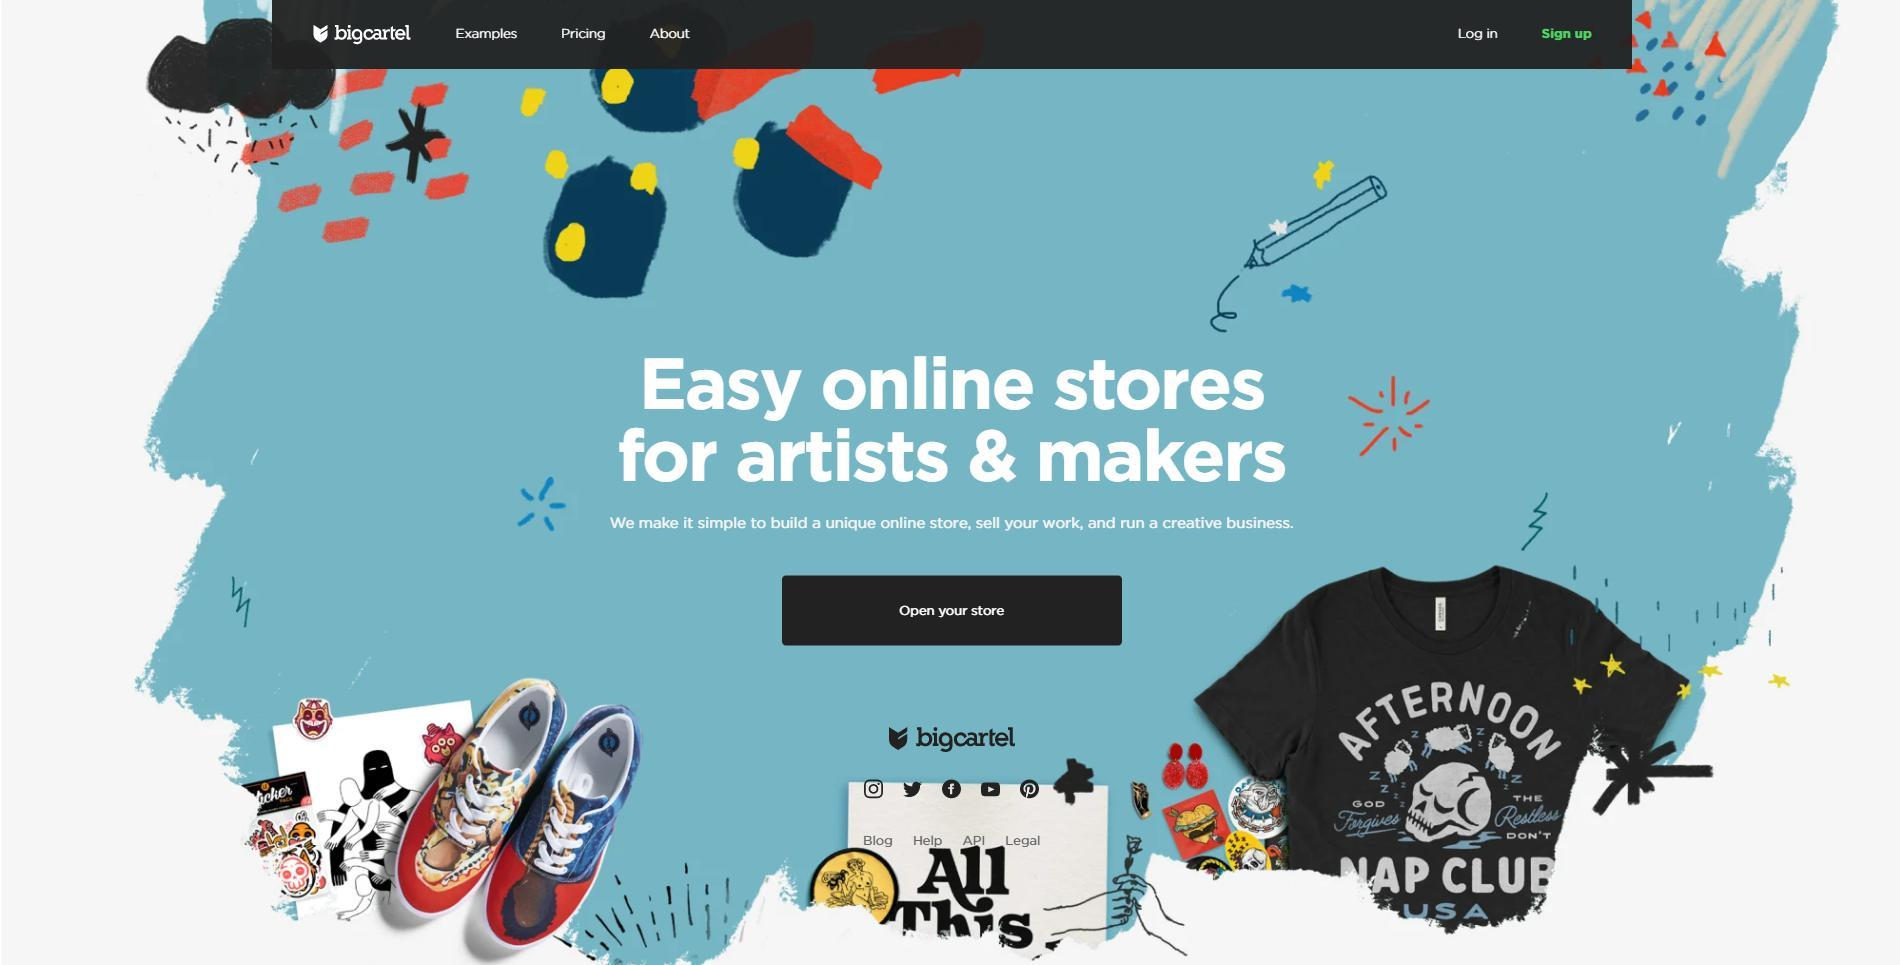 Big Cartel rather target a small niche- artists & makers. Thus, it fits for online sellers with simple product catalog